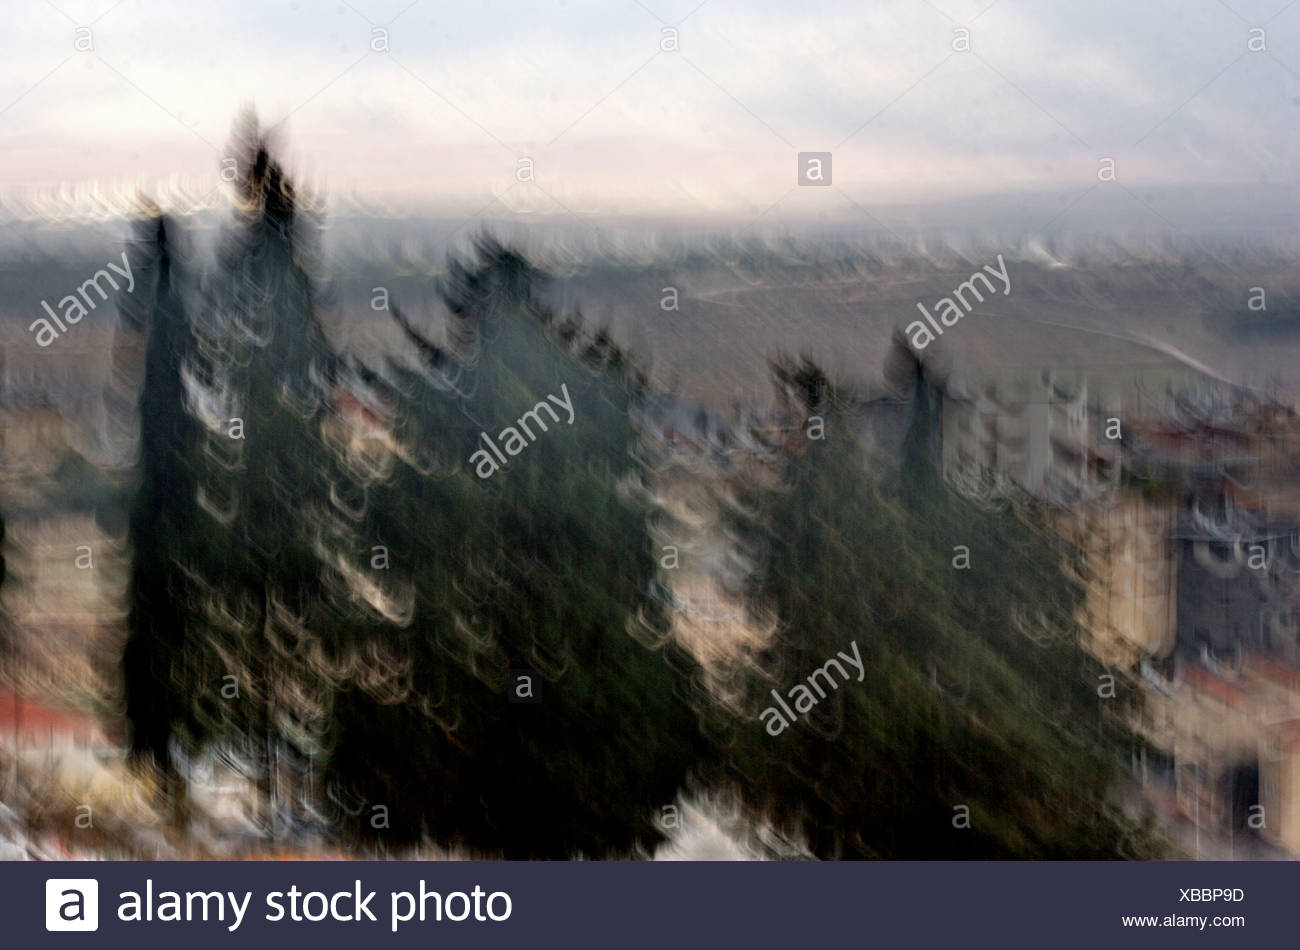 Israel the Lower Galilee A view from Nazareth Digitally manipulated image with motion blur and fuzziness Stock Photo